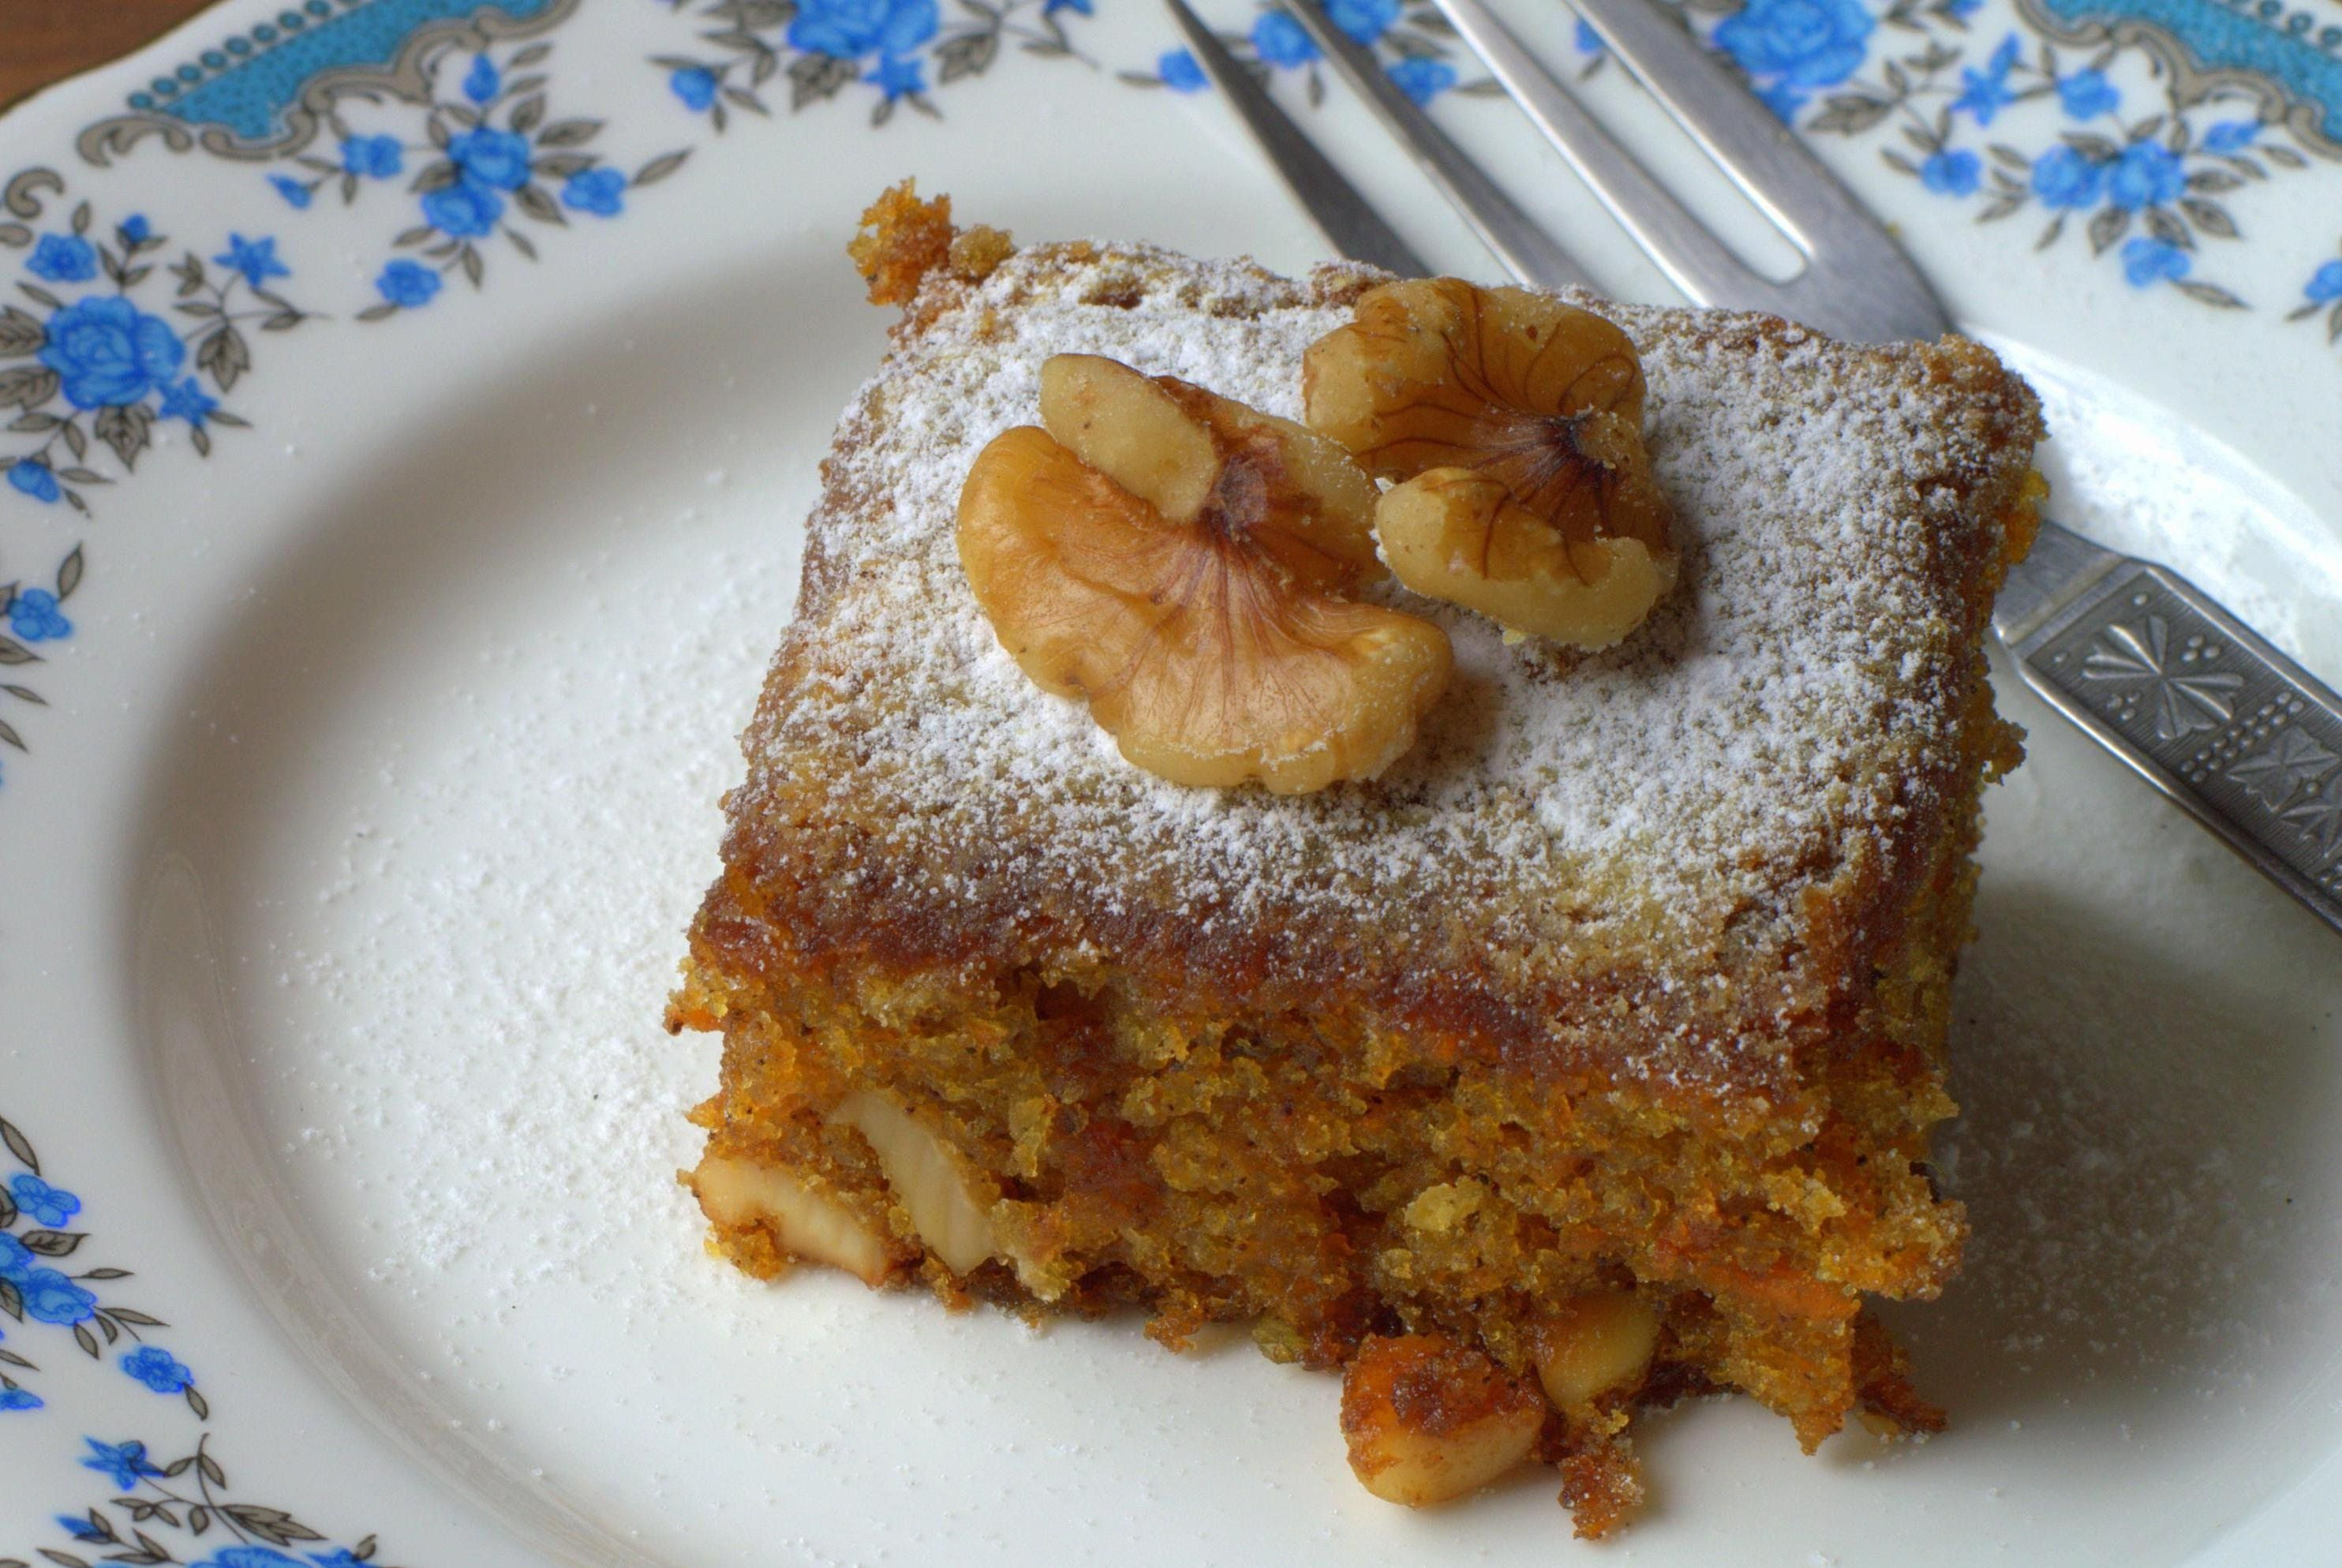 Soft Whole Wheat Carrot Cake Baking In A Convection Microwave